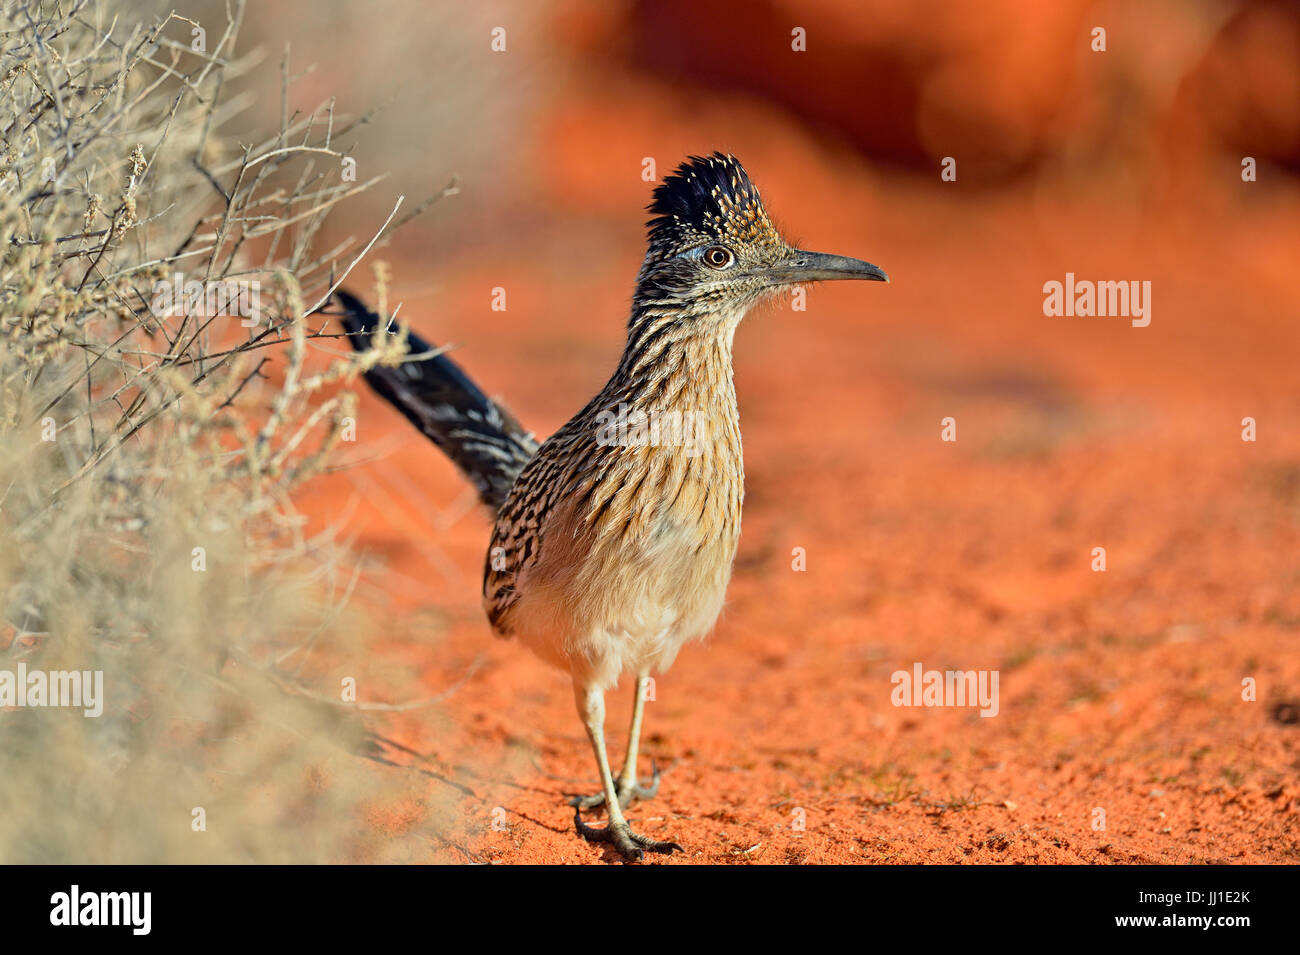 Greater roadrunner, hunting, Valley of Fire State Park, Nevada, USA - Stock Image